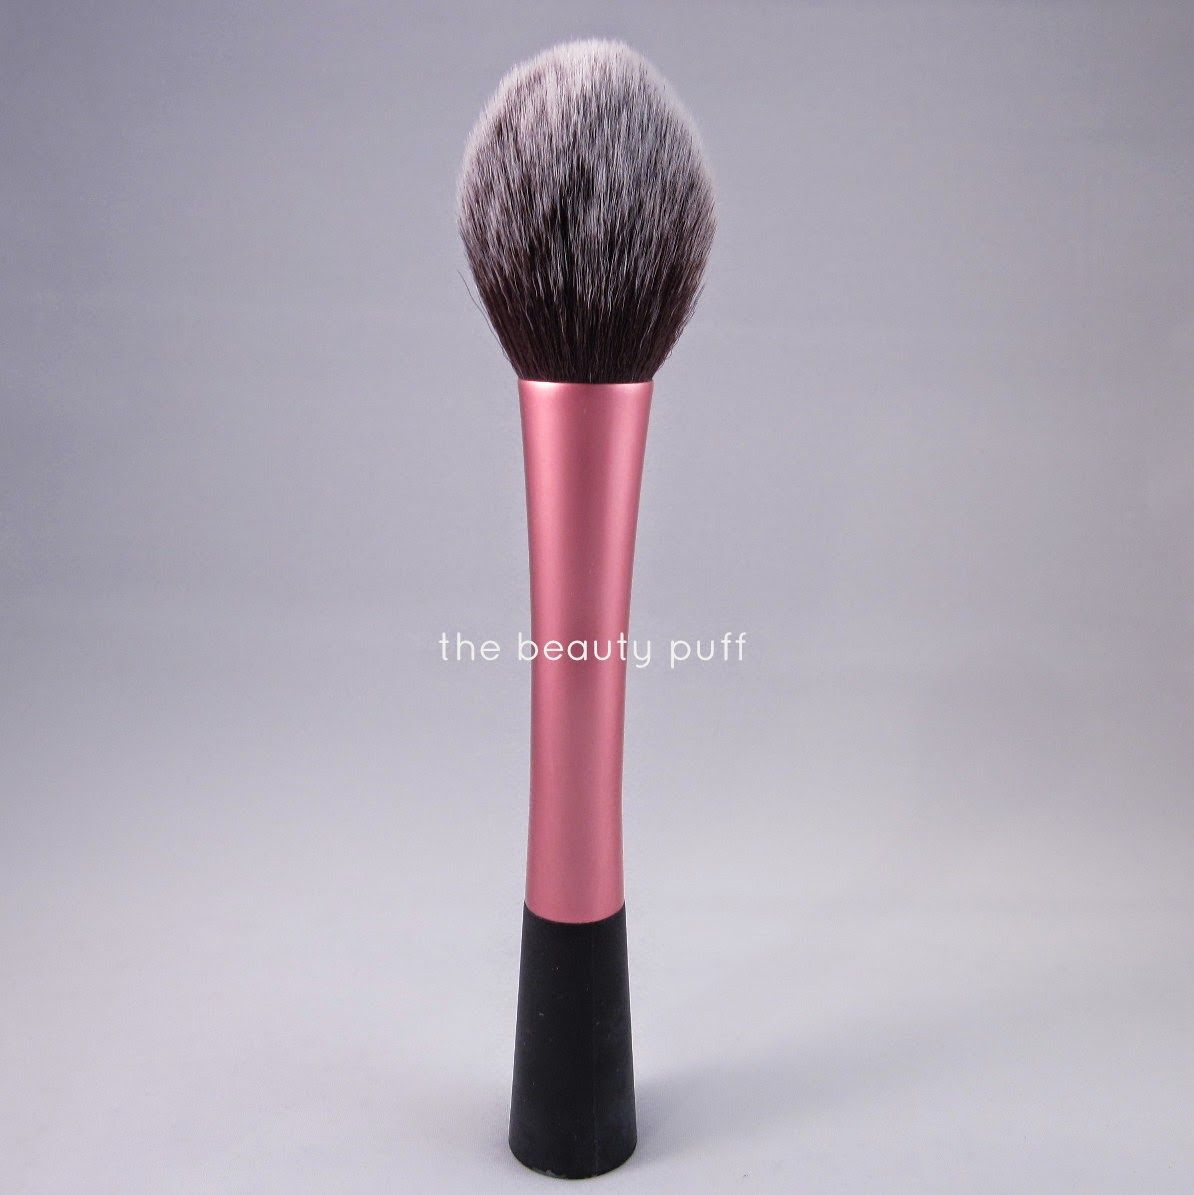 It Cosmetics x ULTA Love Beauty Fully Flawless Blush Brush #227 by IT Cosmetics #11